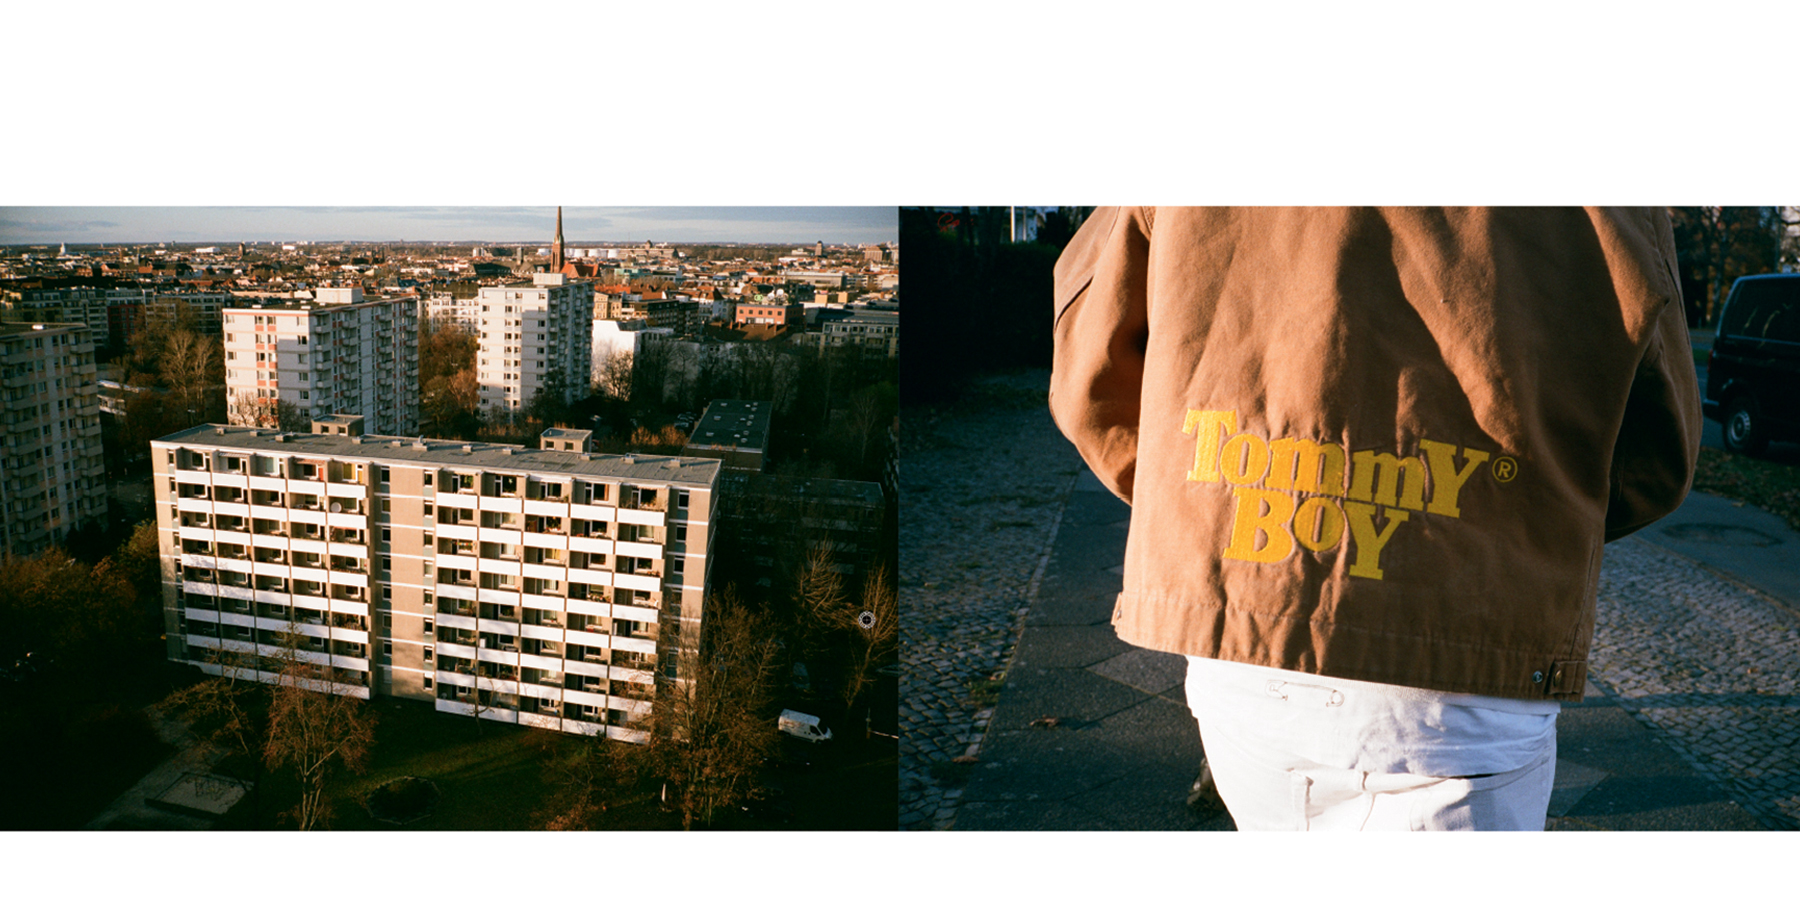 BEINGHUNTED. Magazine #01 - Carhartt WIP Archive, Tommy Boy Jacket